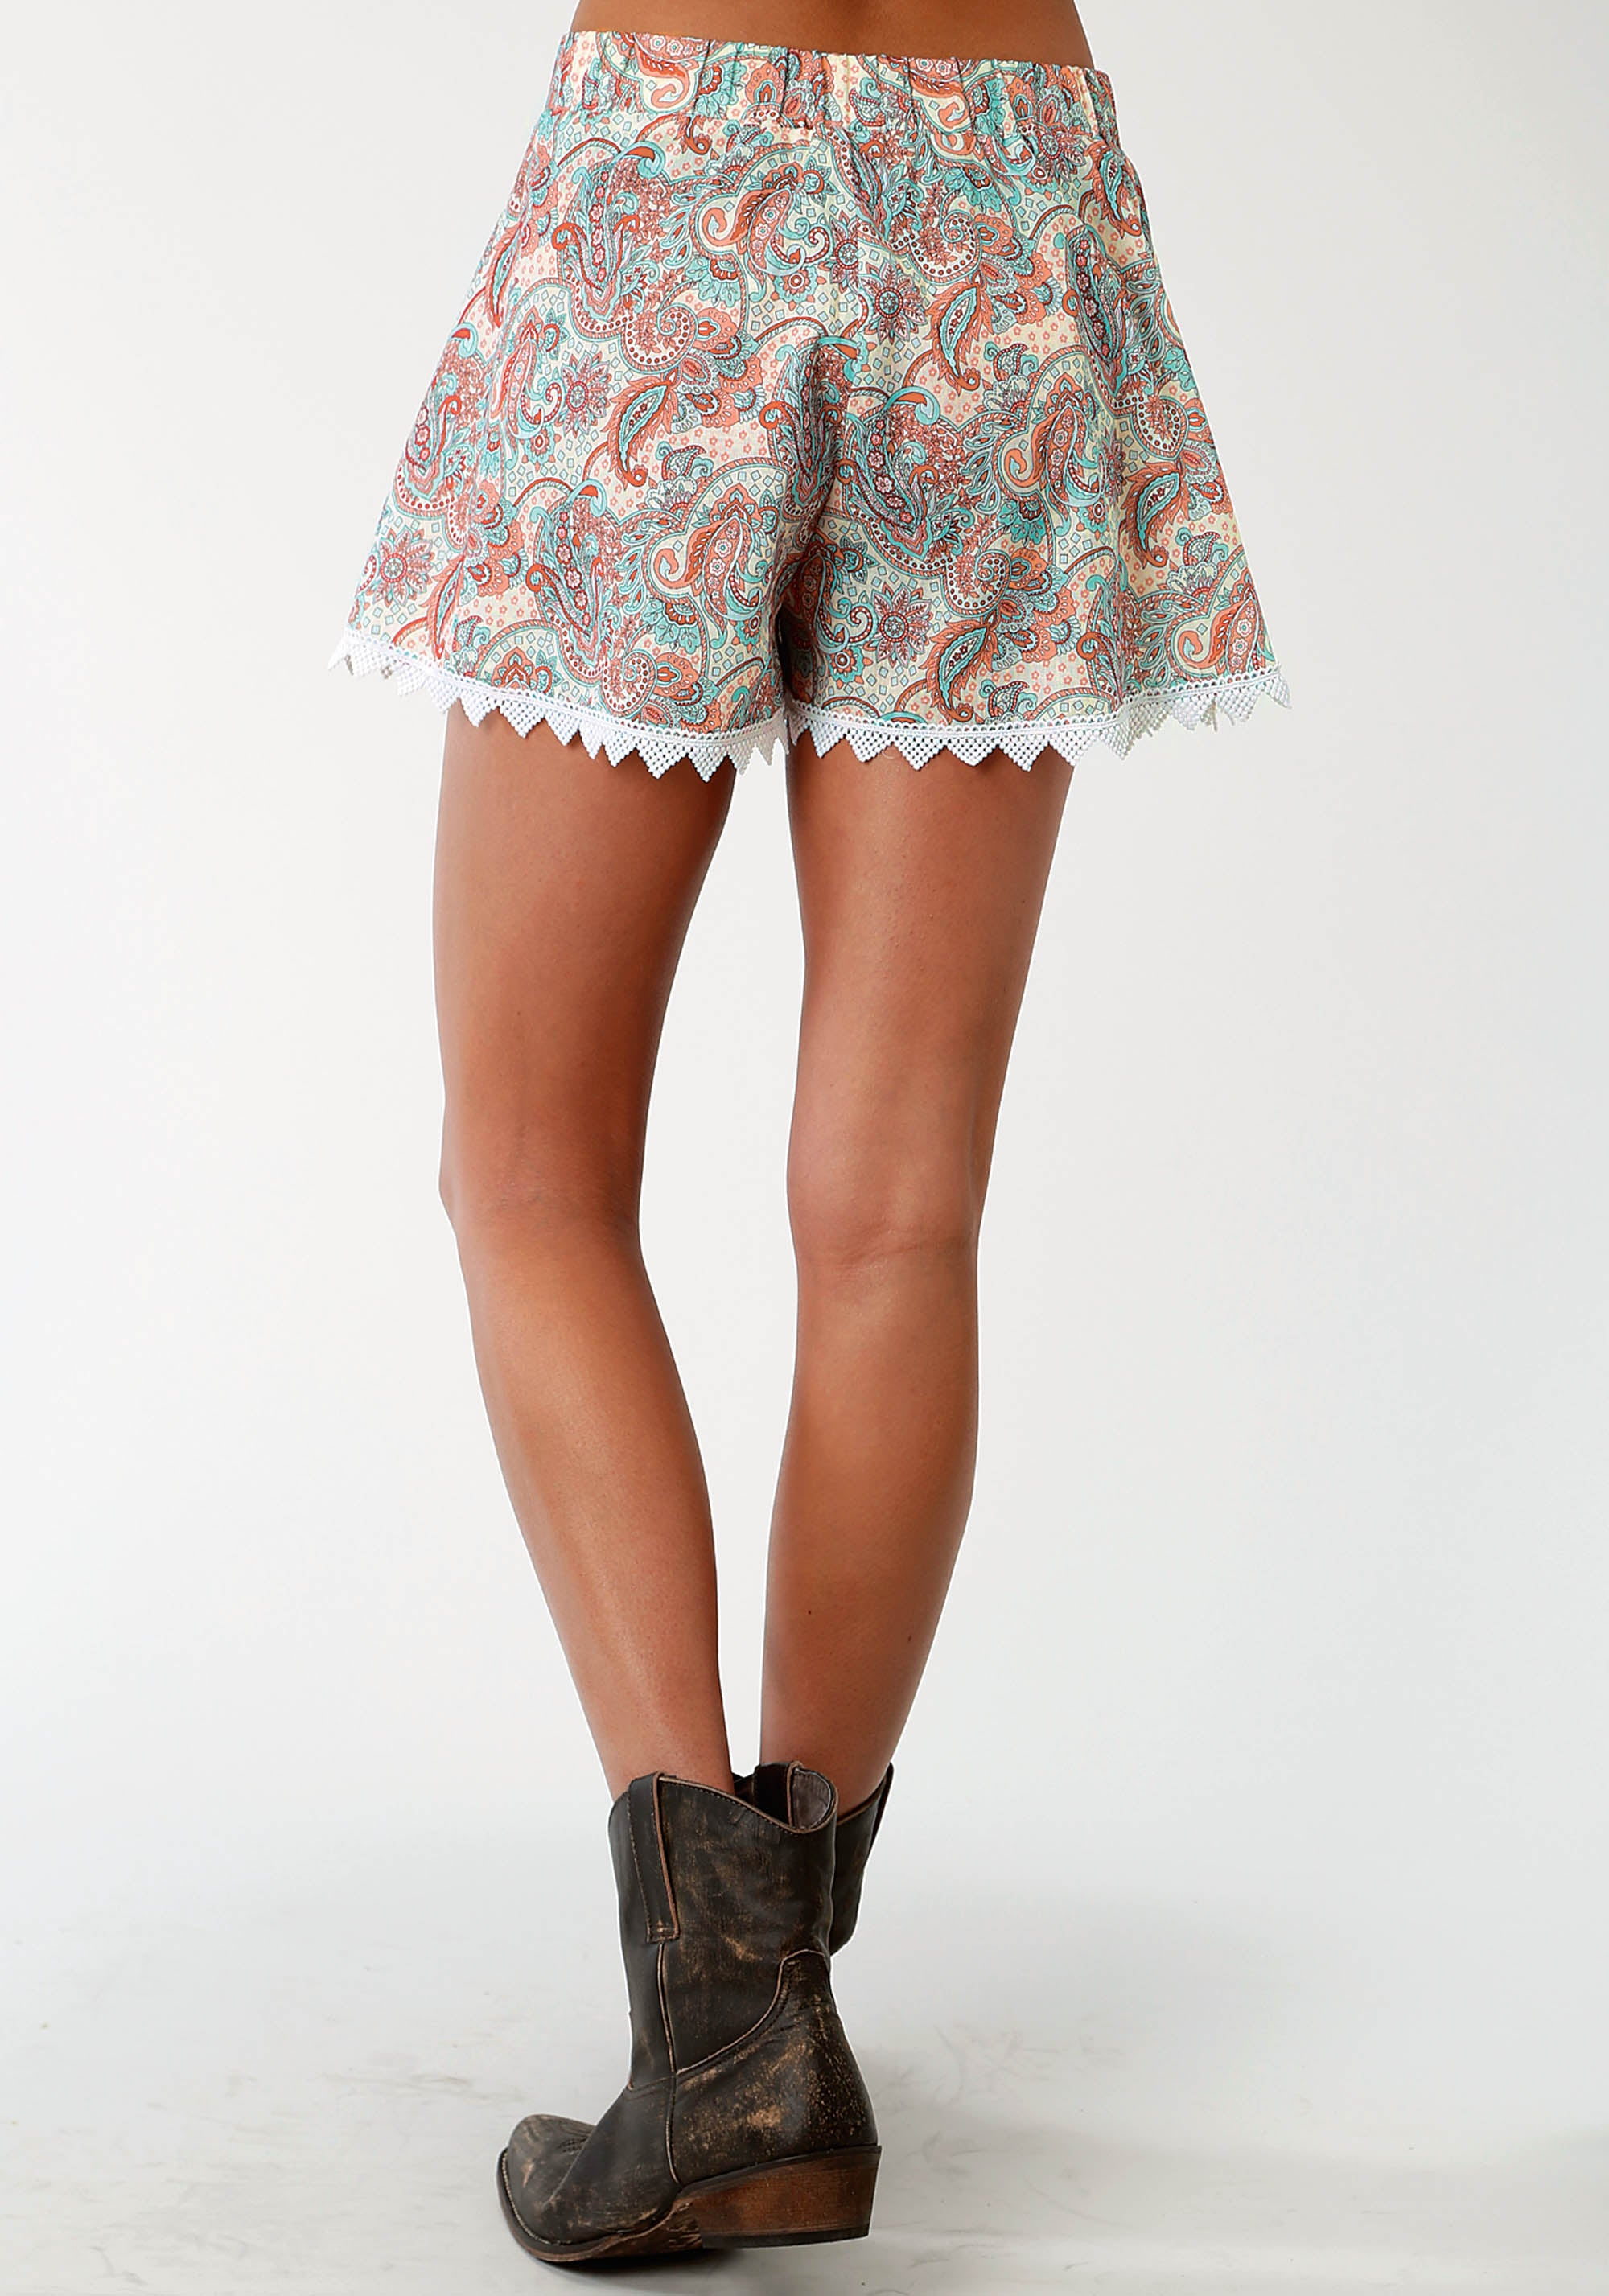 ROPER WOMENS BLUE 1598 TURQUOISE PAISLEY BOYFRIEND SHORT FIVE STAR- SPRING III SHORTS